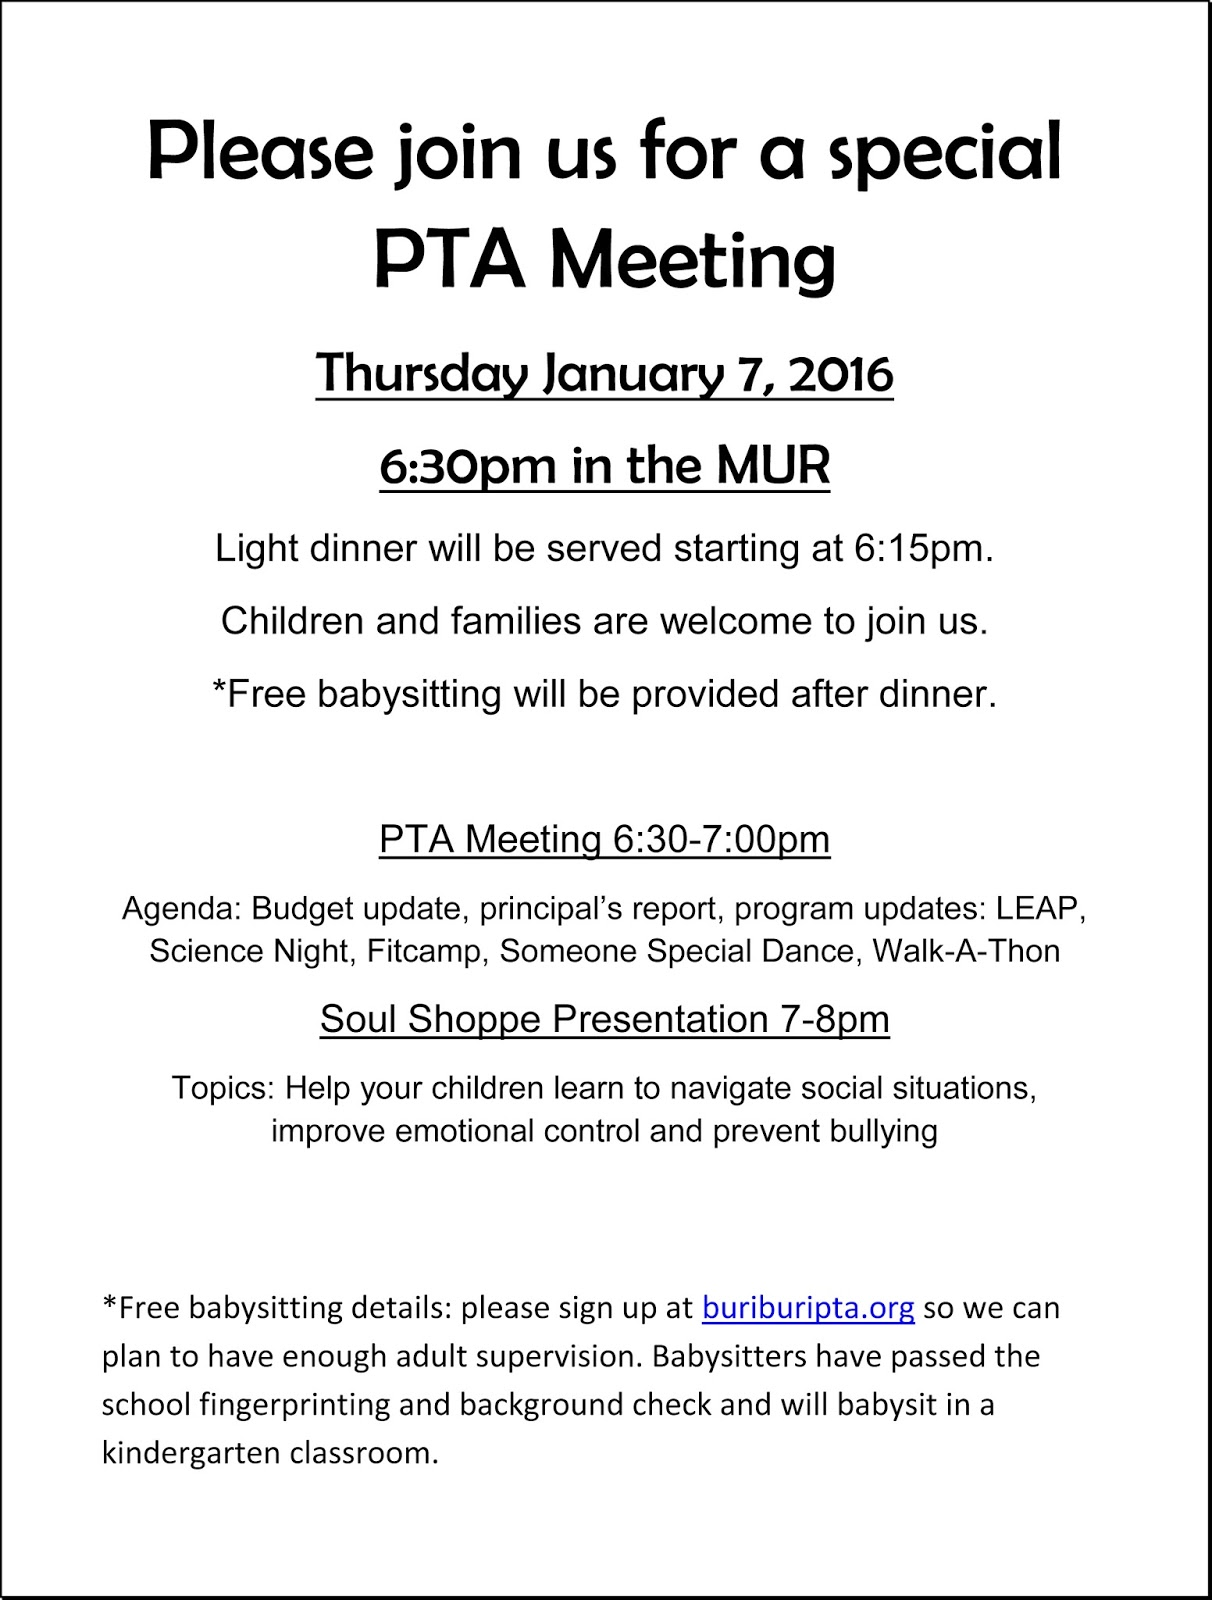 Buri Buri PTA - Better Together!: PTA Meeting & Soul Shoppe